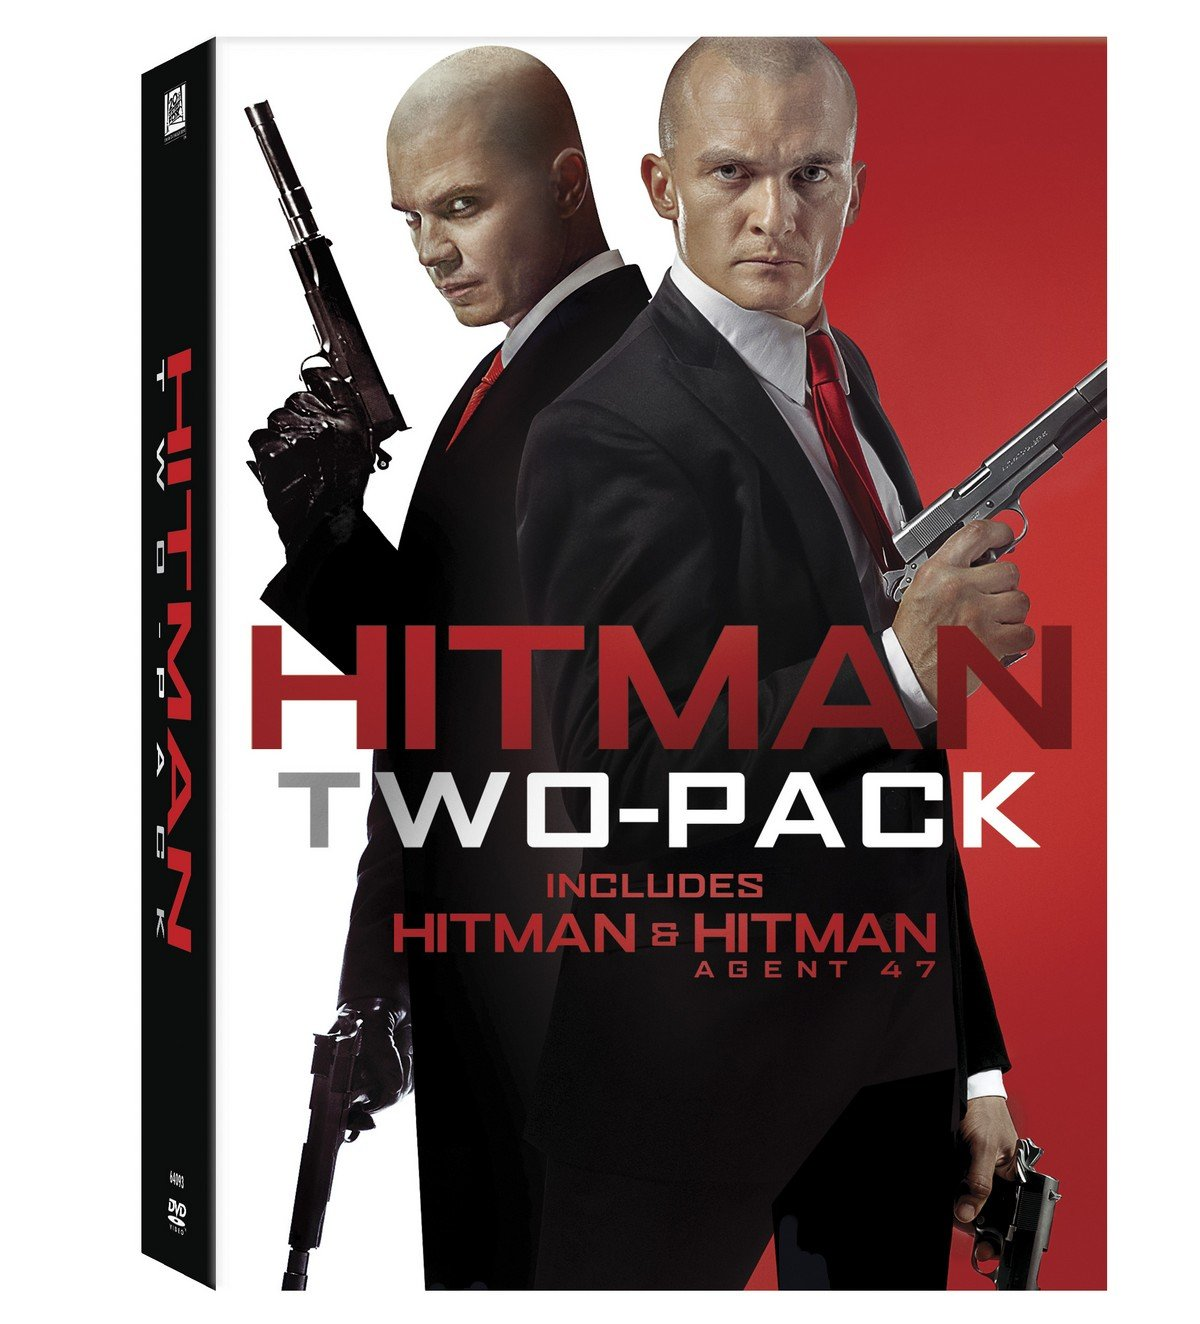 Hitman 2 Movies Collection Hitman Hitman Agent 47 2 Disc